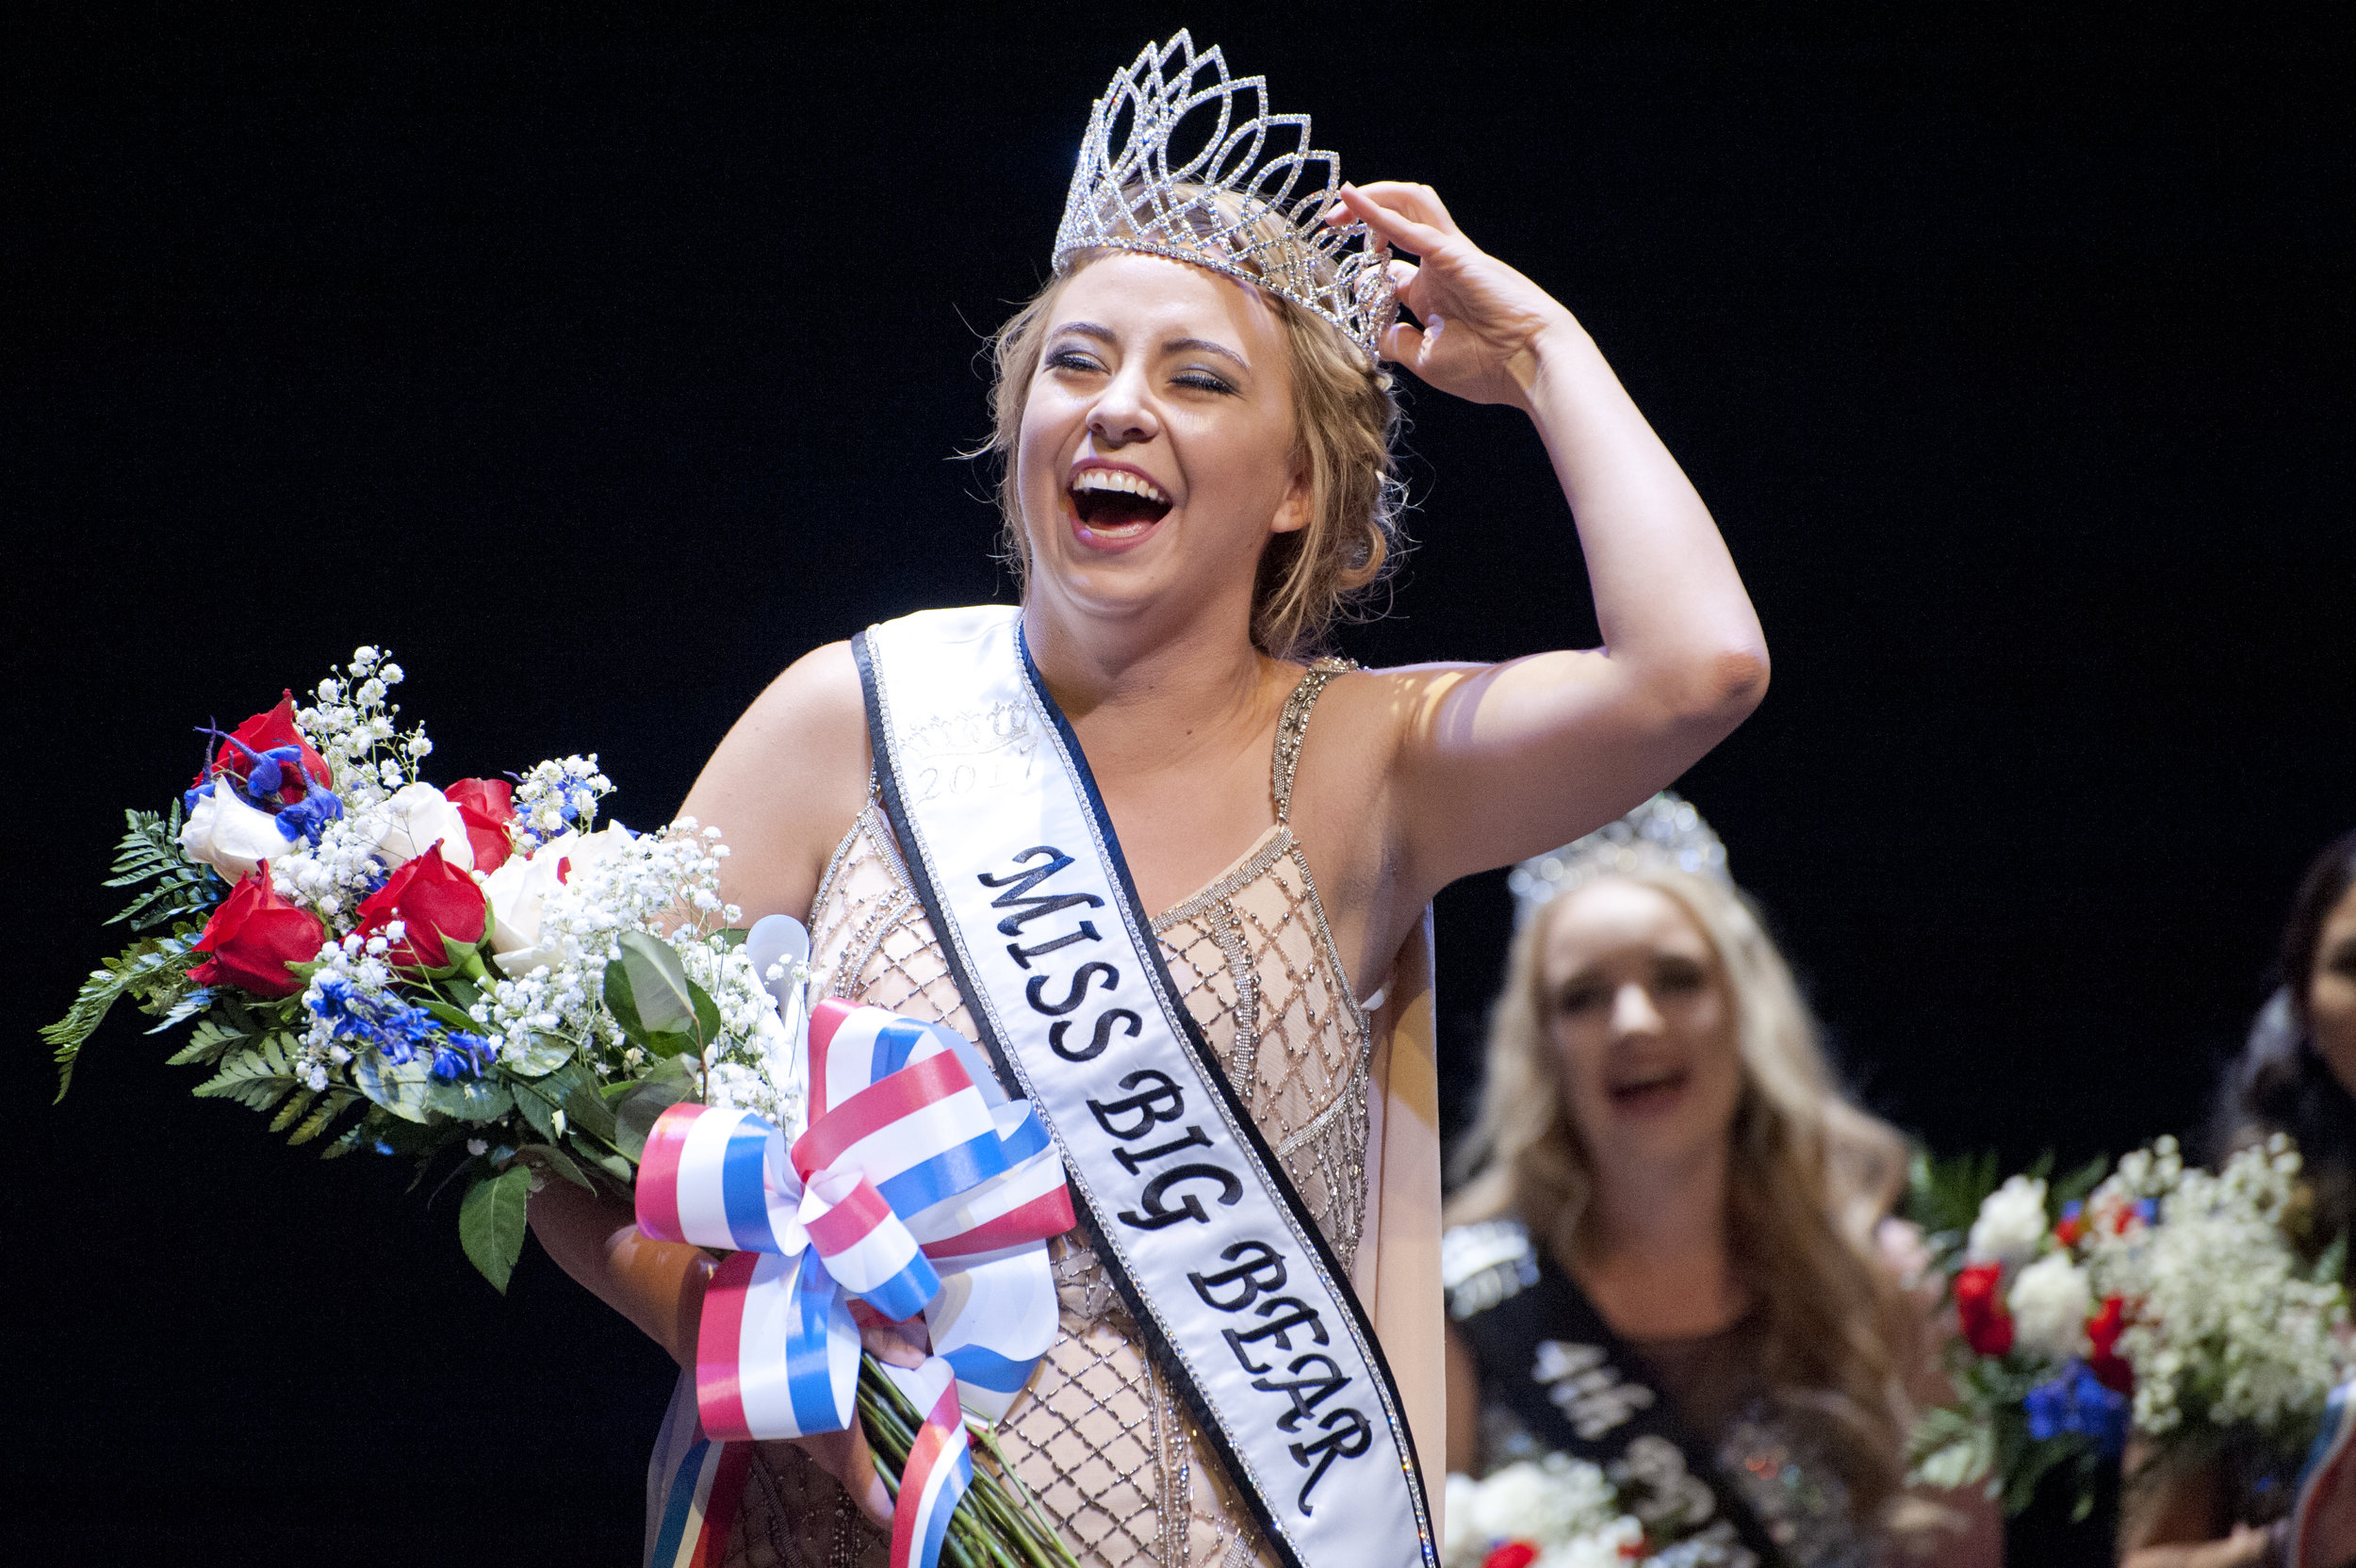 Charlotte Haston straightens her crown moments after winning the Miss Big Bear pageant at the Big Bear Lake Performing Arts Center Sept. 10, 2016.